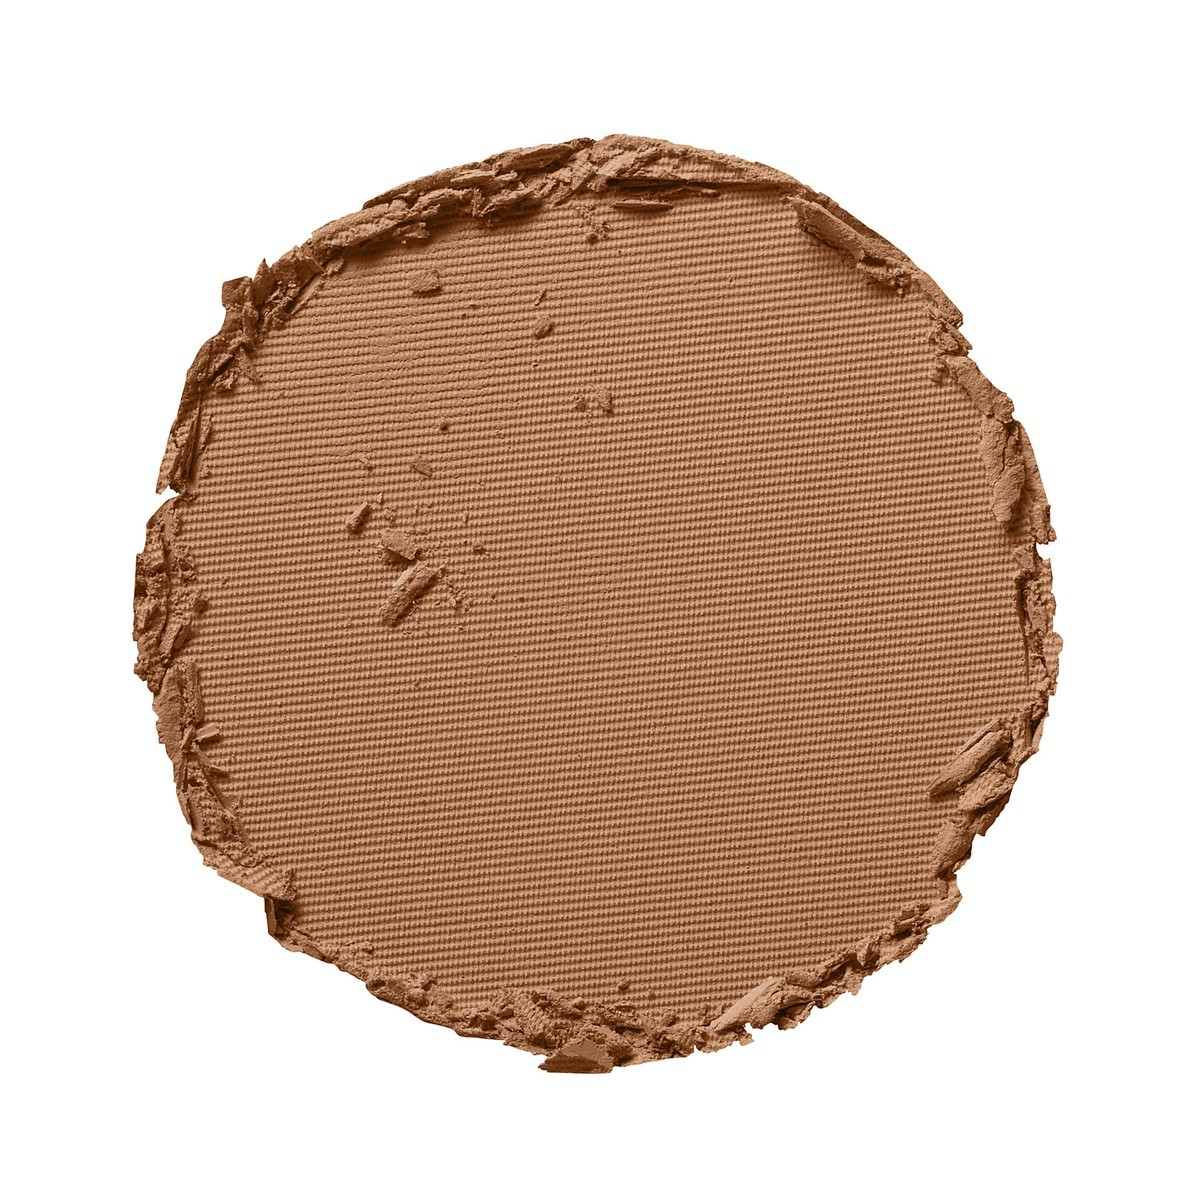 pur minerals pressed mineral makeup 4 in 1 reviews in foundation chickadvisor. Black Bedroom Furniture Sets. Home Design Ideas